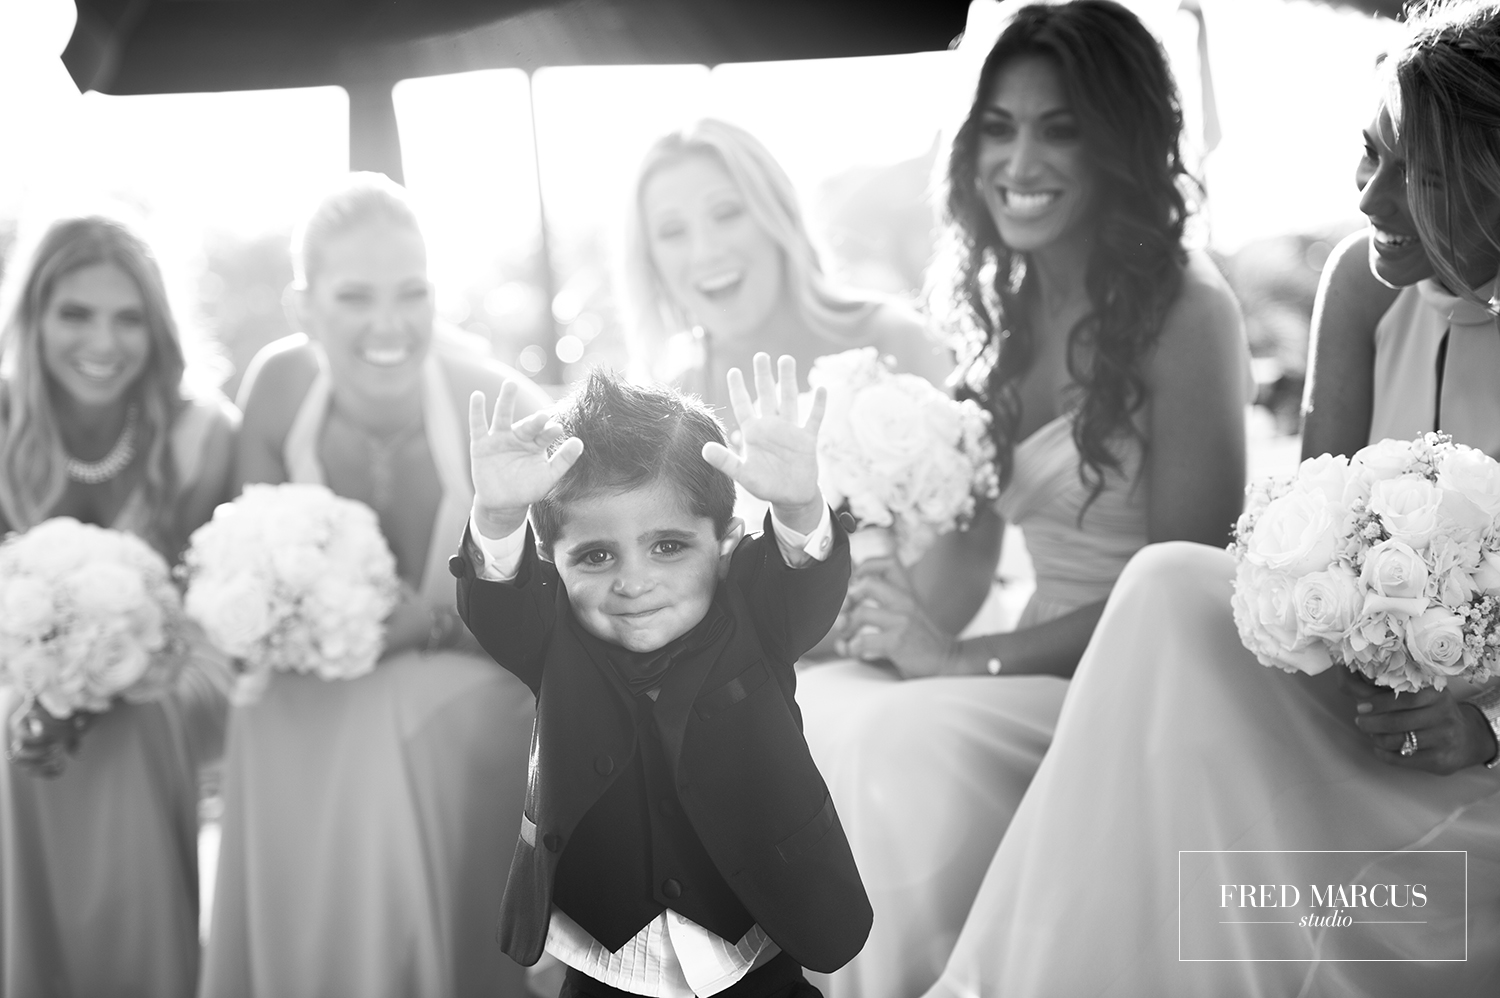 Photo of the Week: Ring bearer